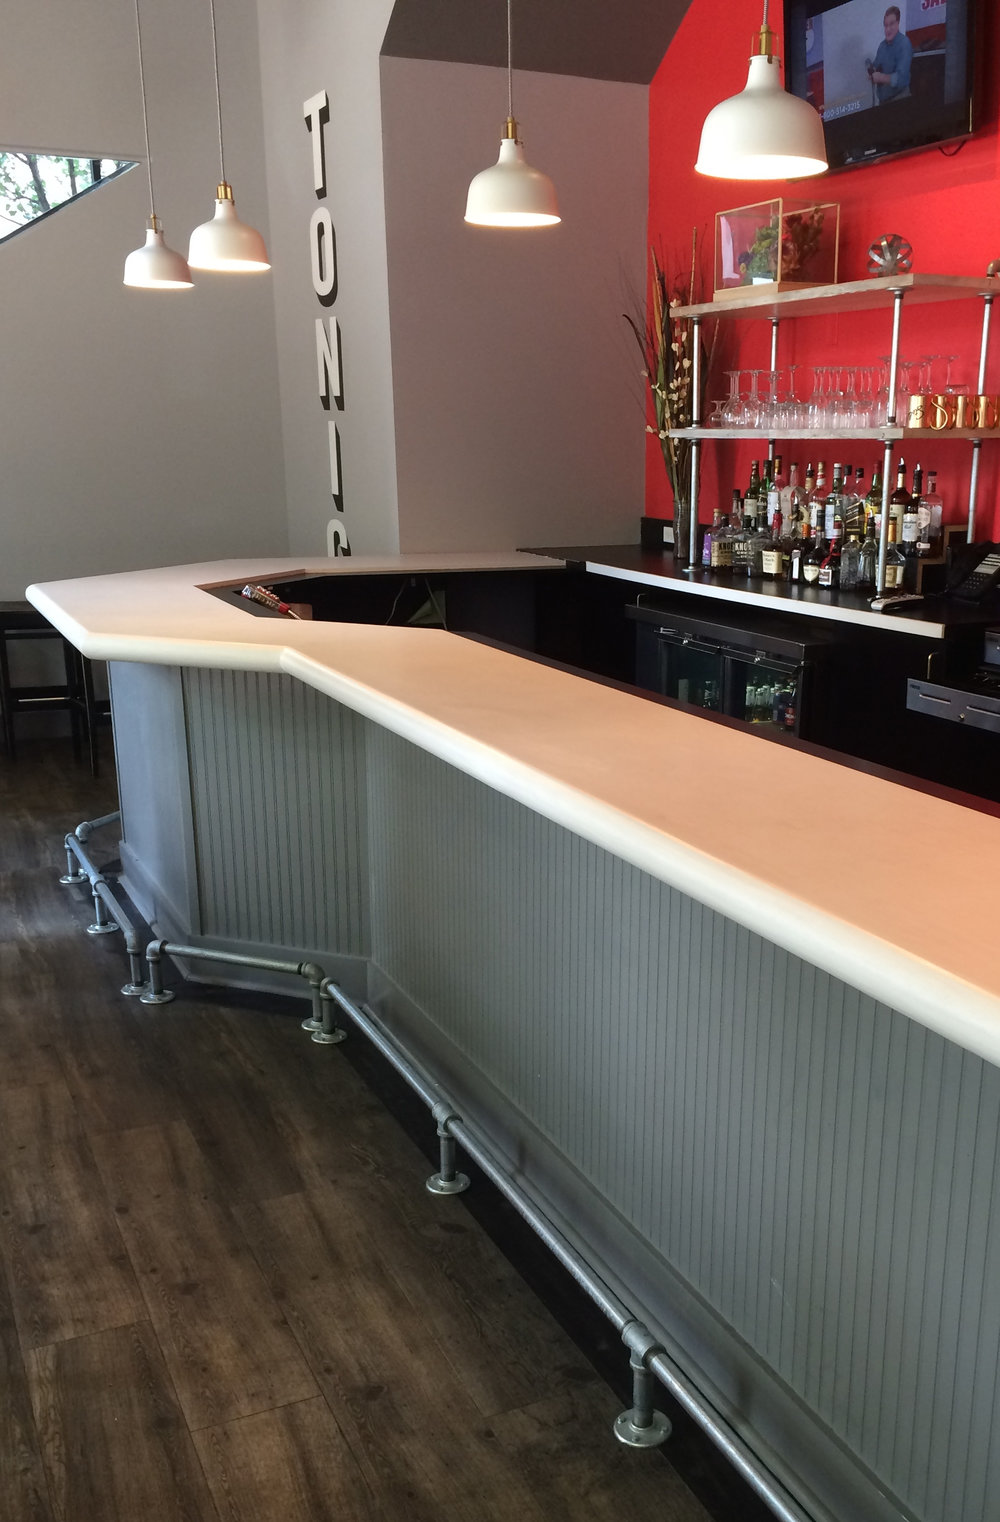 Backbar Shelves And Footrails For Tonic Bar U0026 Grill In Pittsburghu0027s  Cultural District. Whitewashed Salvaged Pine Shelves With Galvanized Steel  Pipe Uprights ...